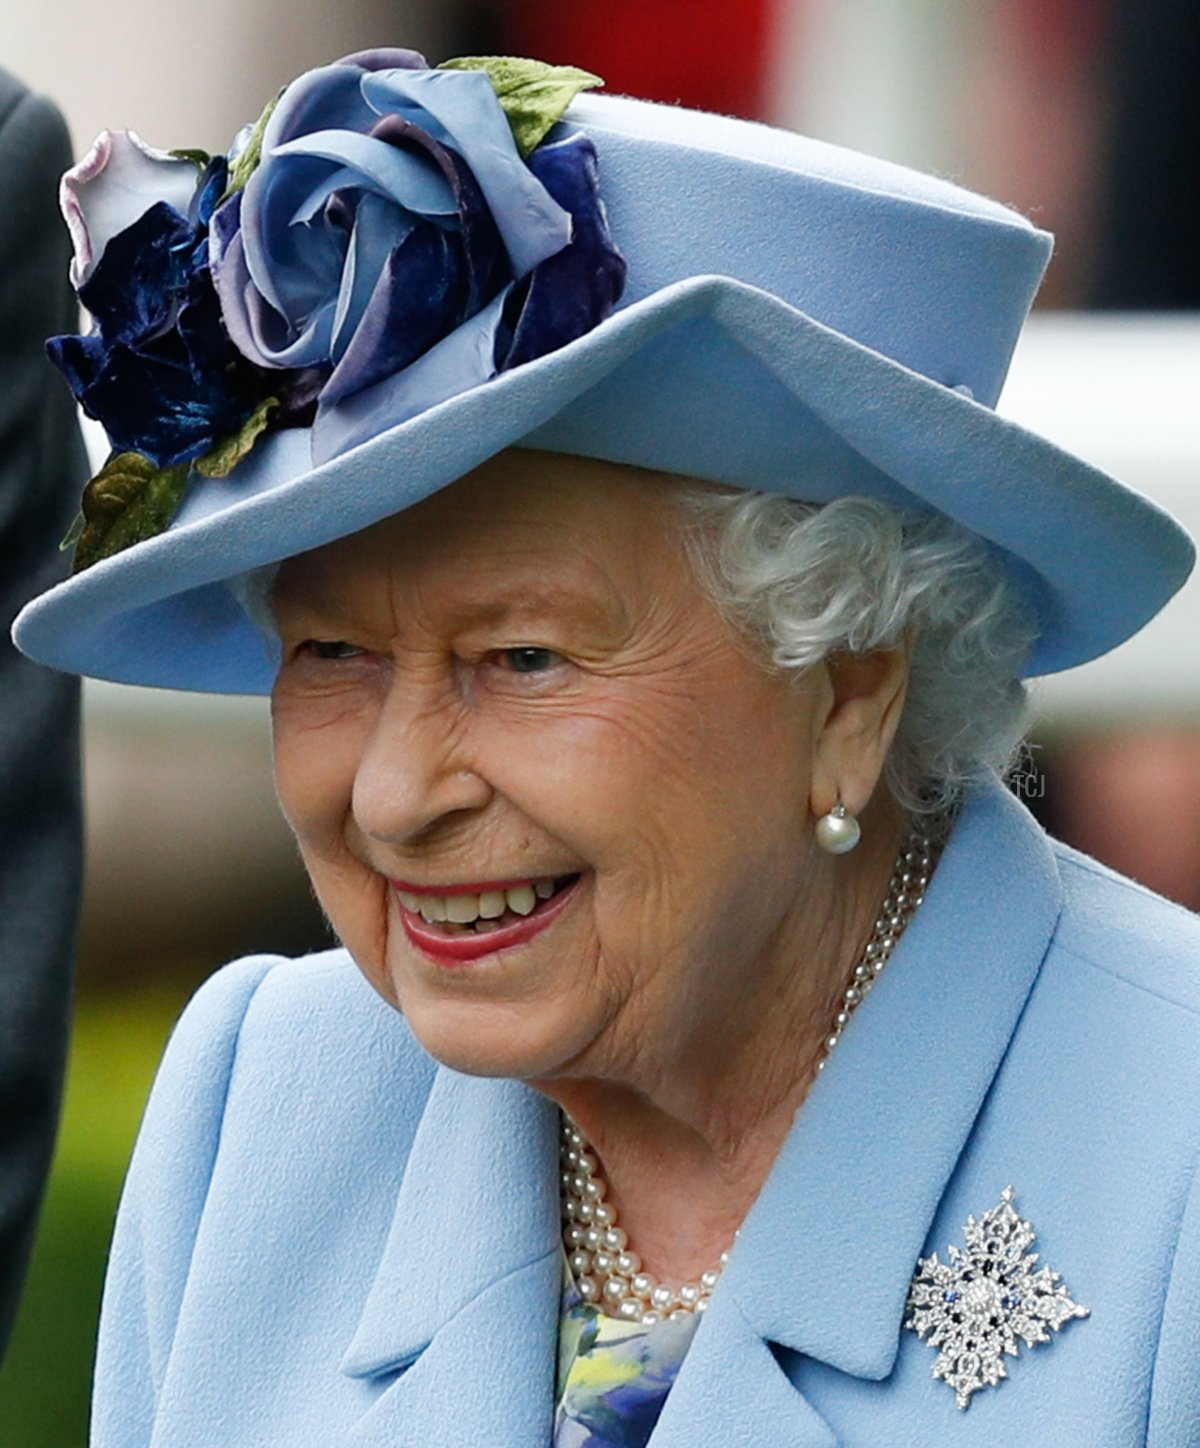 Britain's Queen Elizabeth II attends on day one of the Royal Ascot horse racing meet, in Ascot, west of London, on June 18, 2019